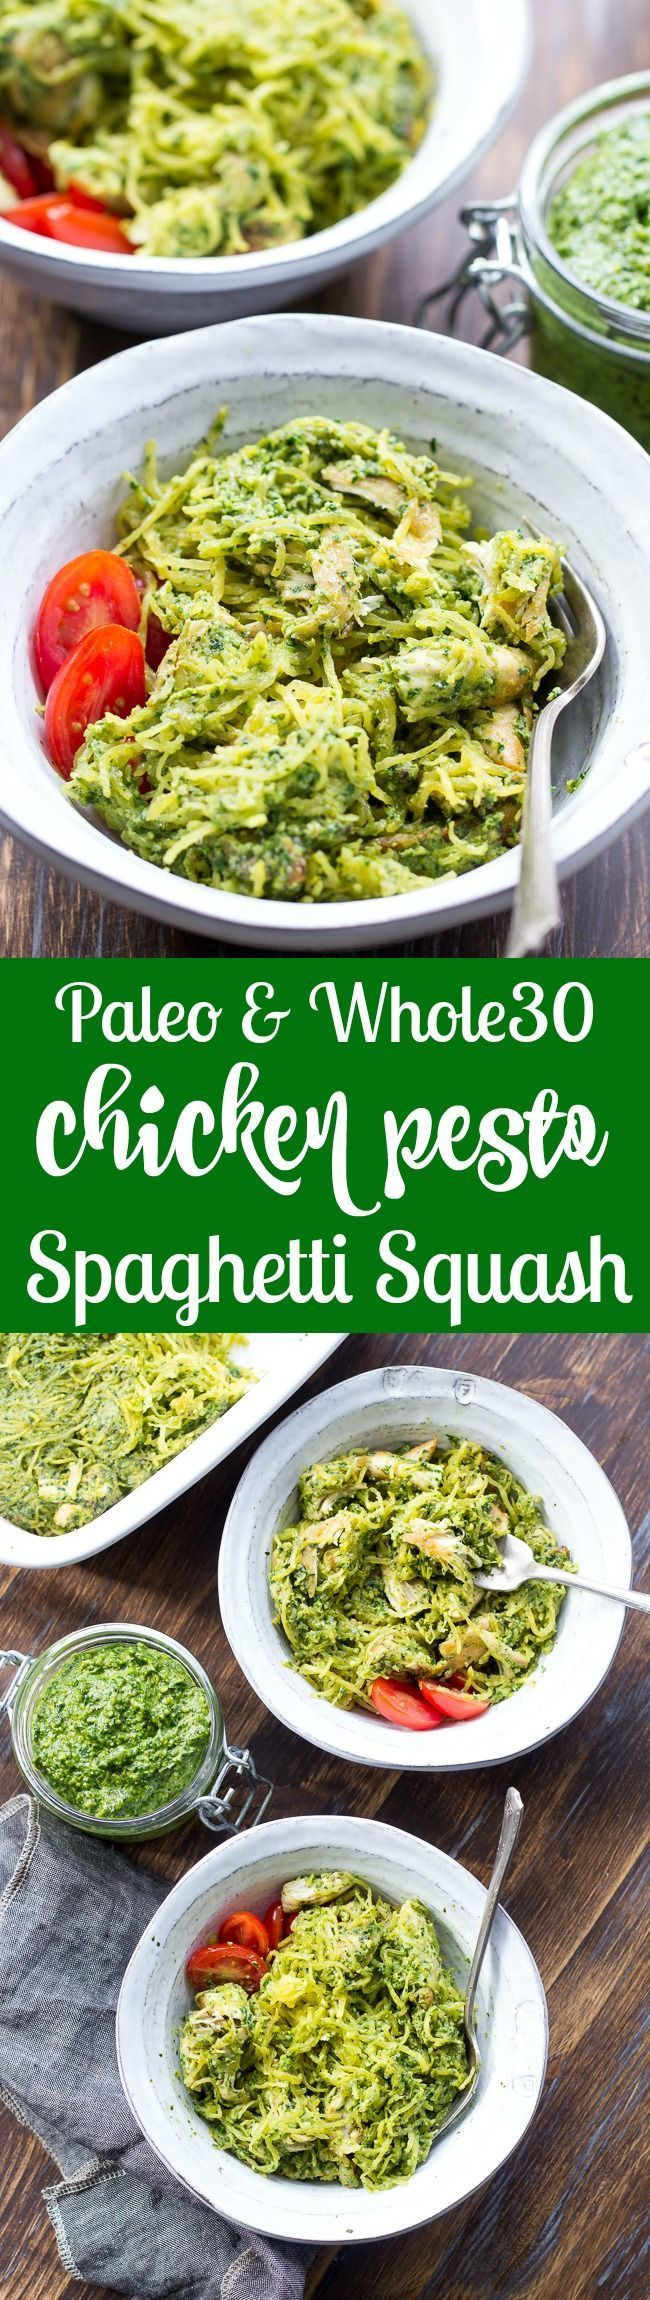 Best 25 Chicken Squash Ideas On Pinterest Spaghetti